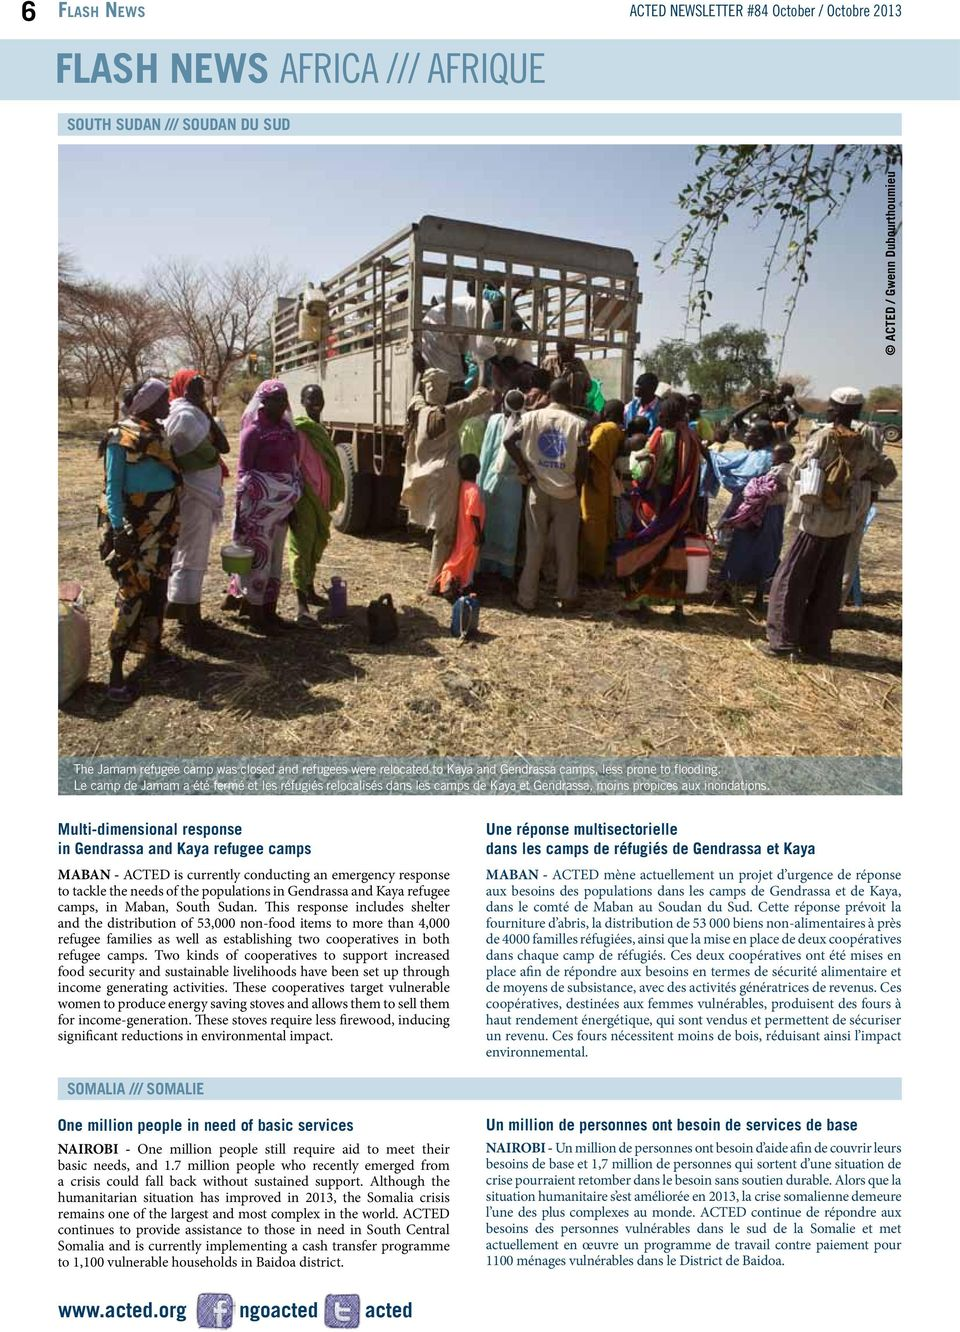 Multi-dimensional response in Gendrassa and Kaya refugee camps MABAN - ACTED is currently conducting an emergency response to tackle the needs of the populations in Gendrassa and Kaya refugee camps,